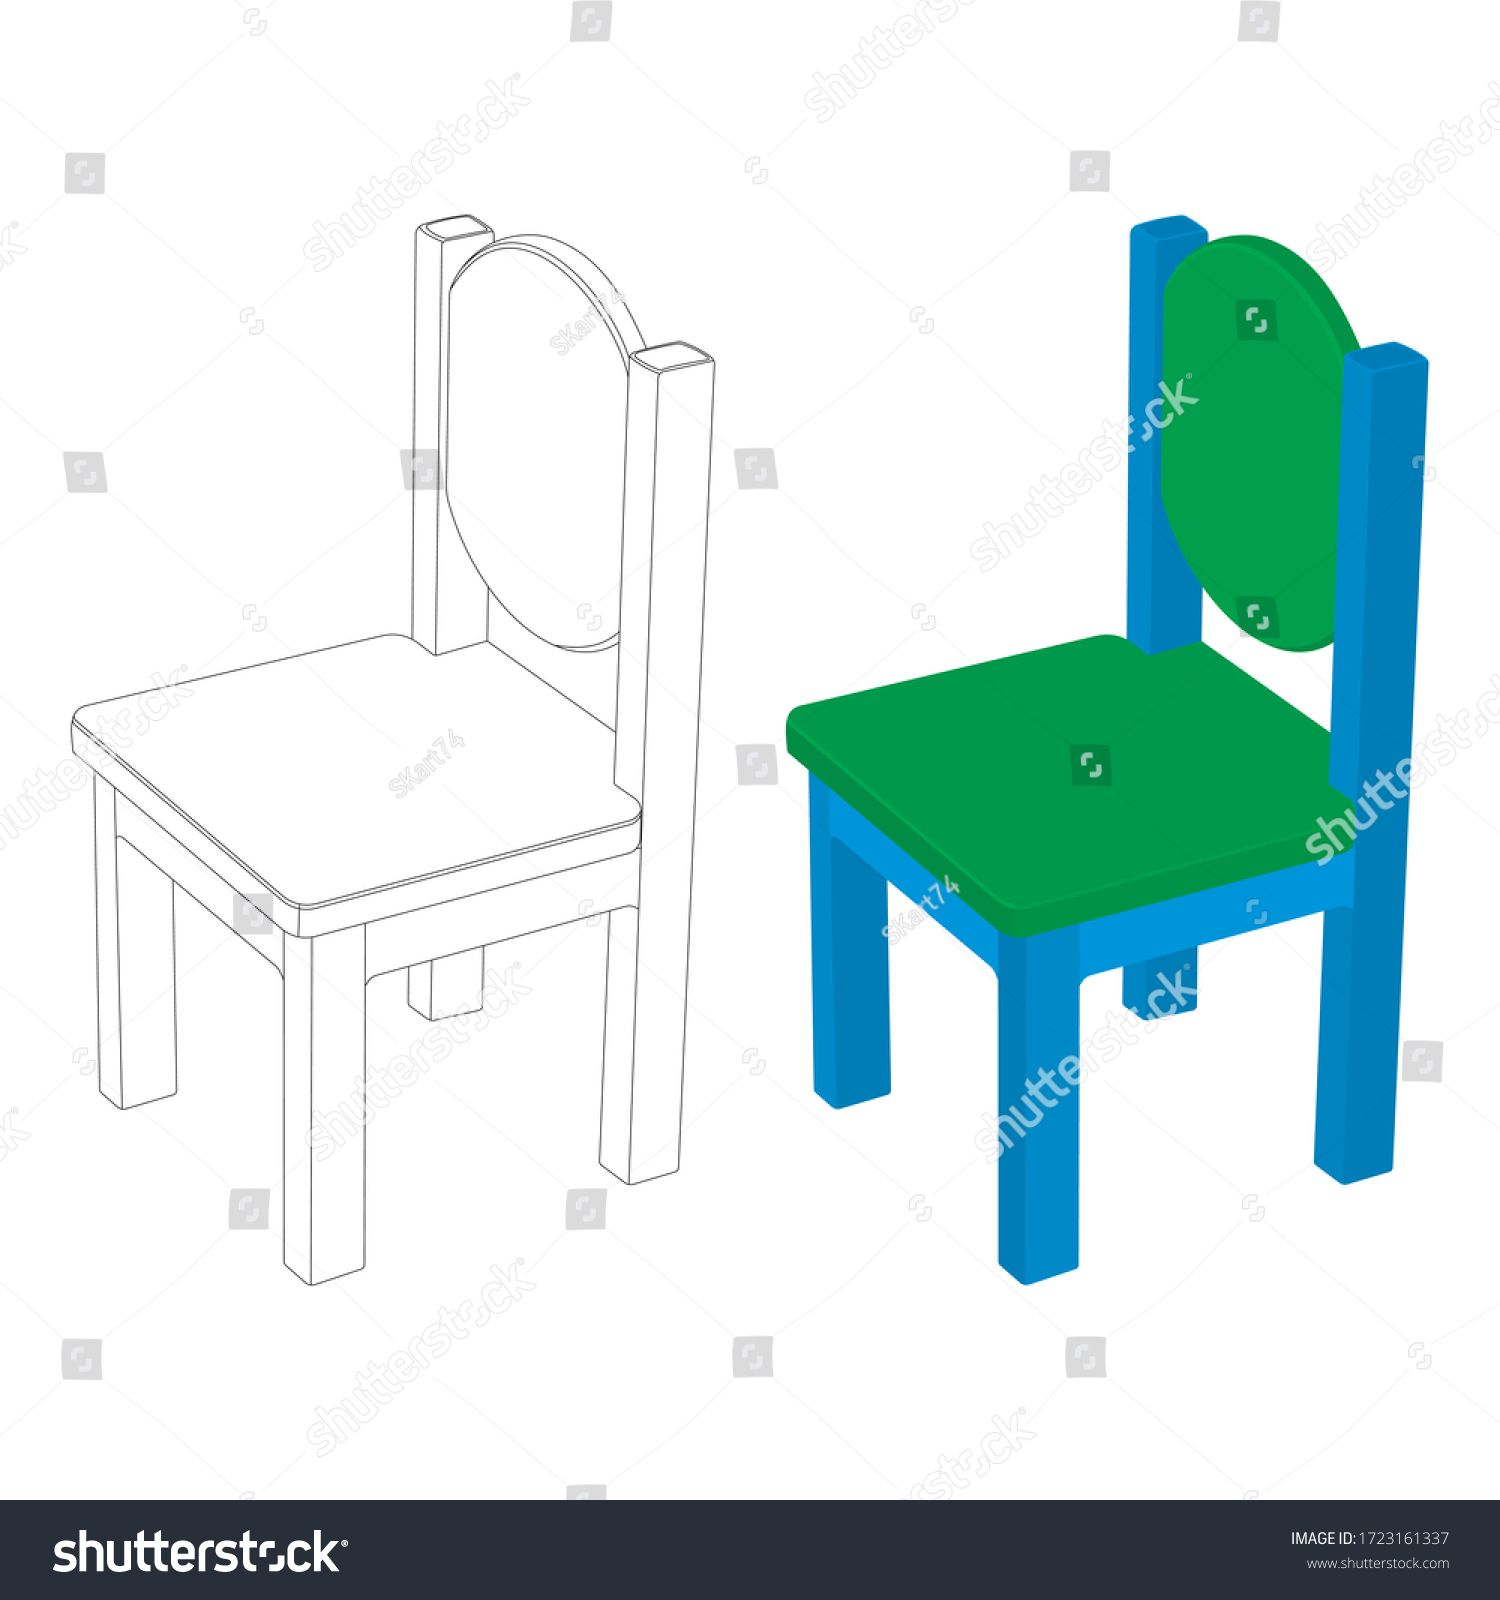 The Colorful Kids Chair Vector Illustration The Chair Furniture Clip Art The Chair Coloring Page Ad Sponsored Ve In 2020 Kids Chairs Branding Design Logo Chair